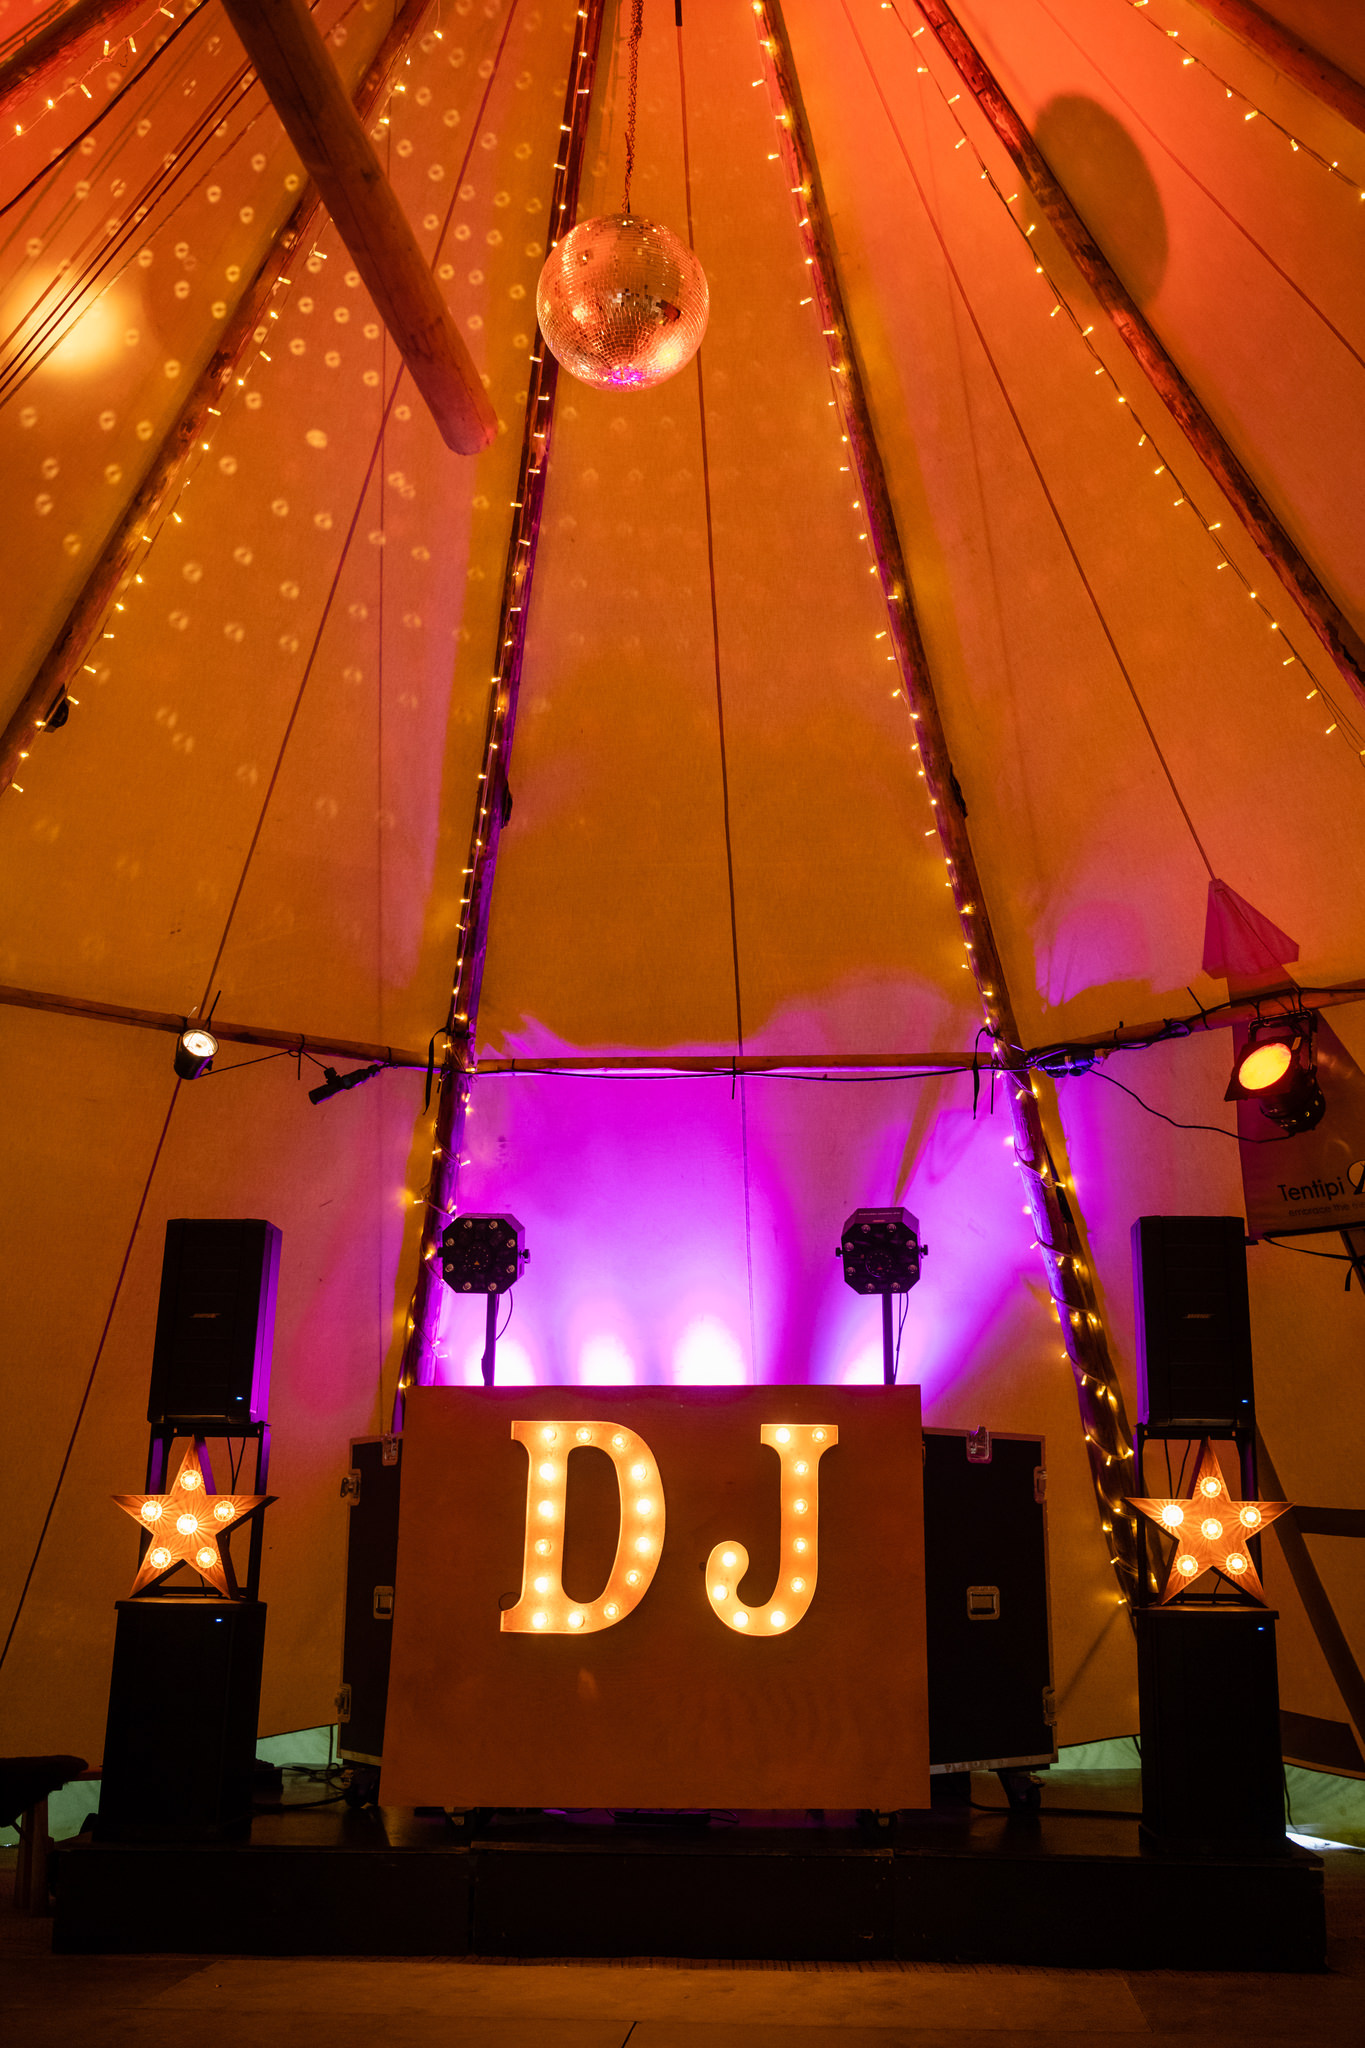 DJ Booth in a Tipi